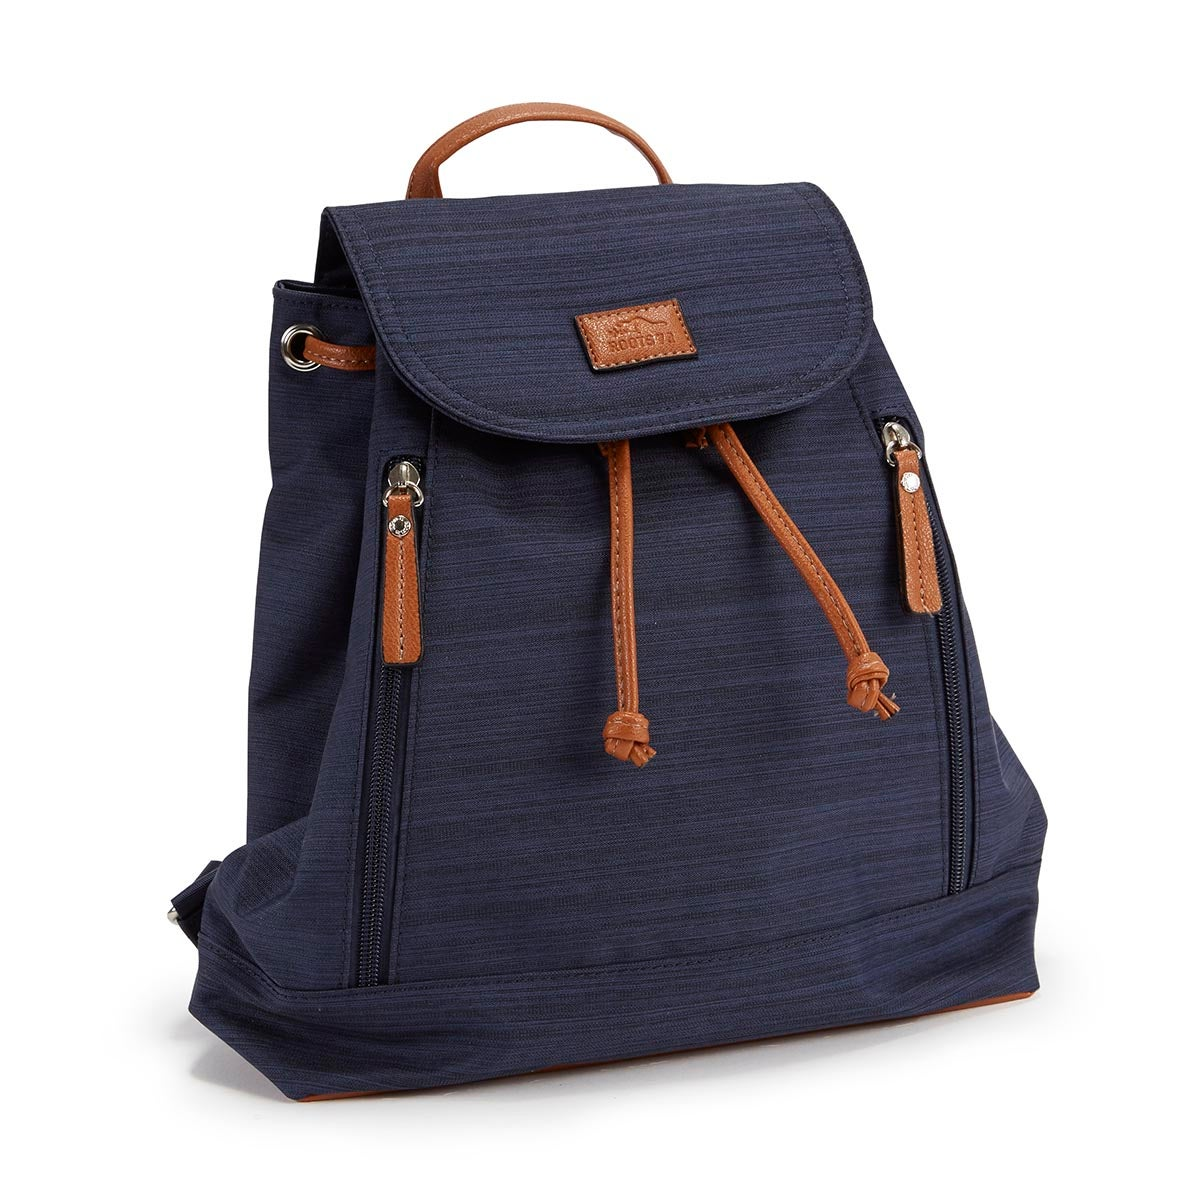 Lds navy textured mini backpack